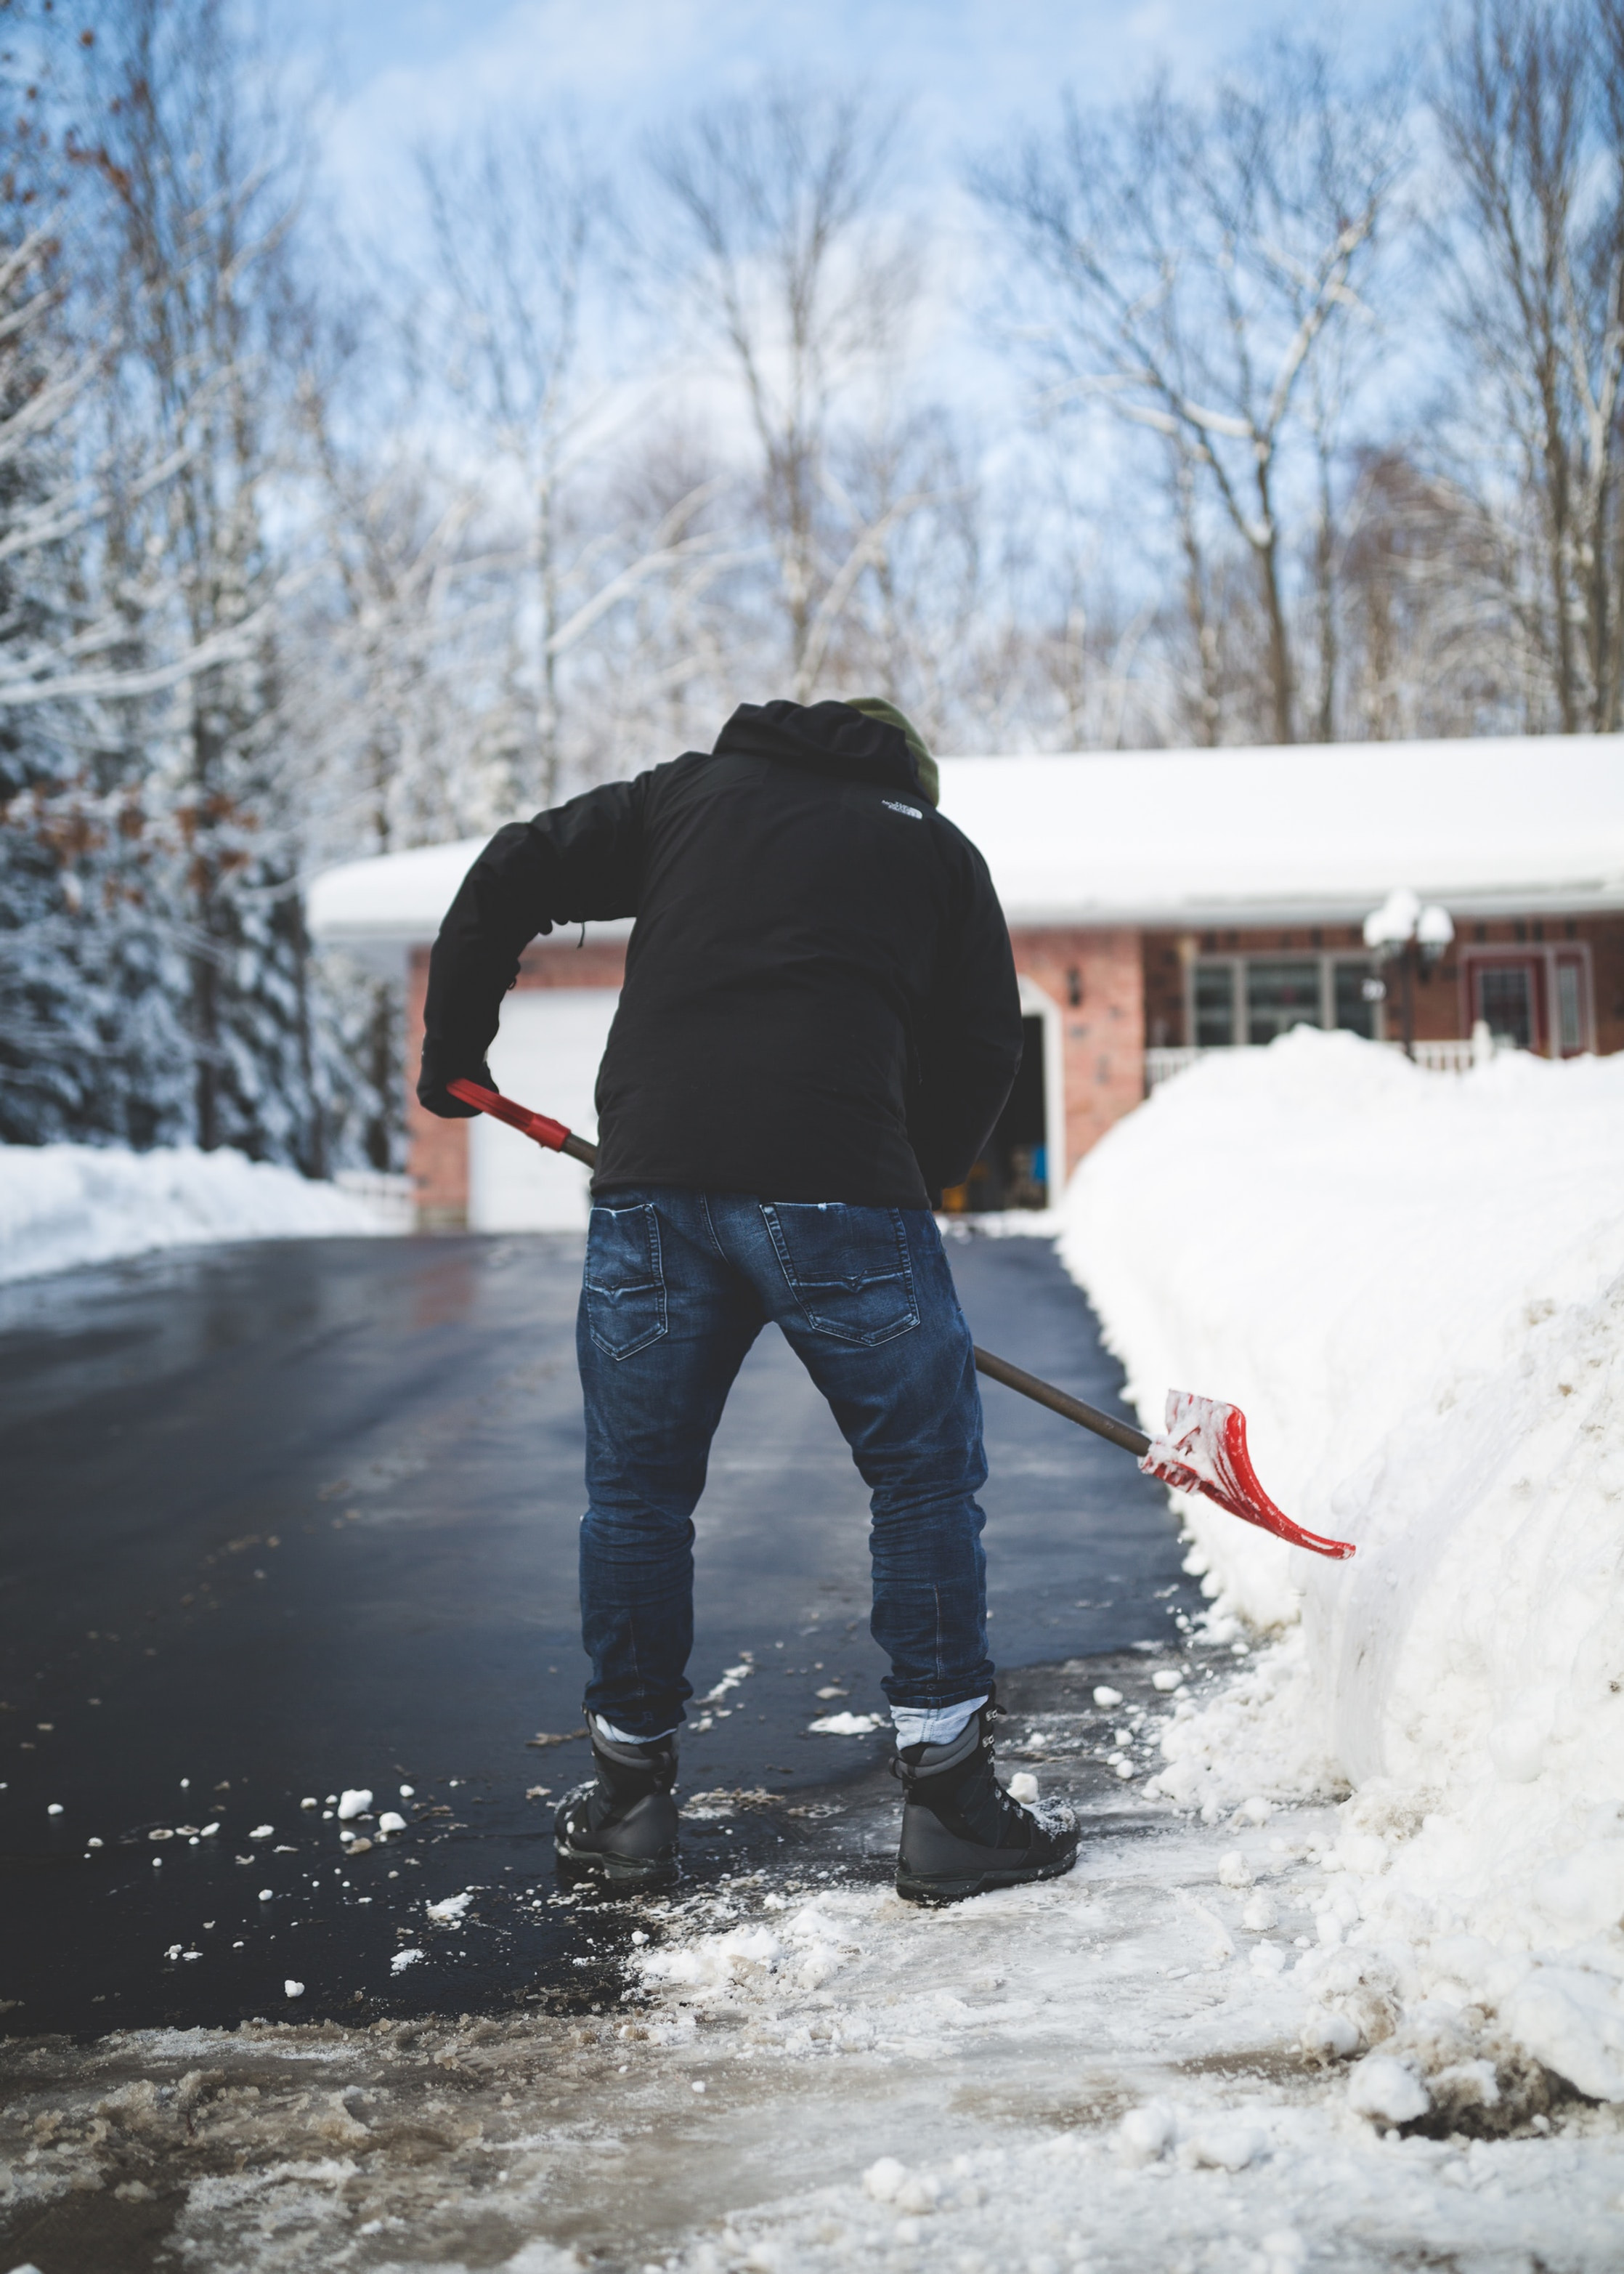 All Winter Snow Removal